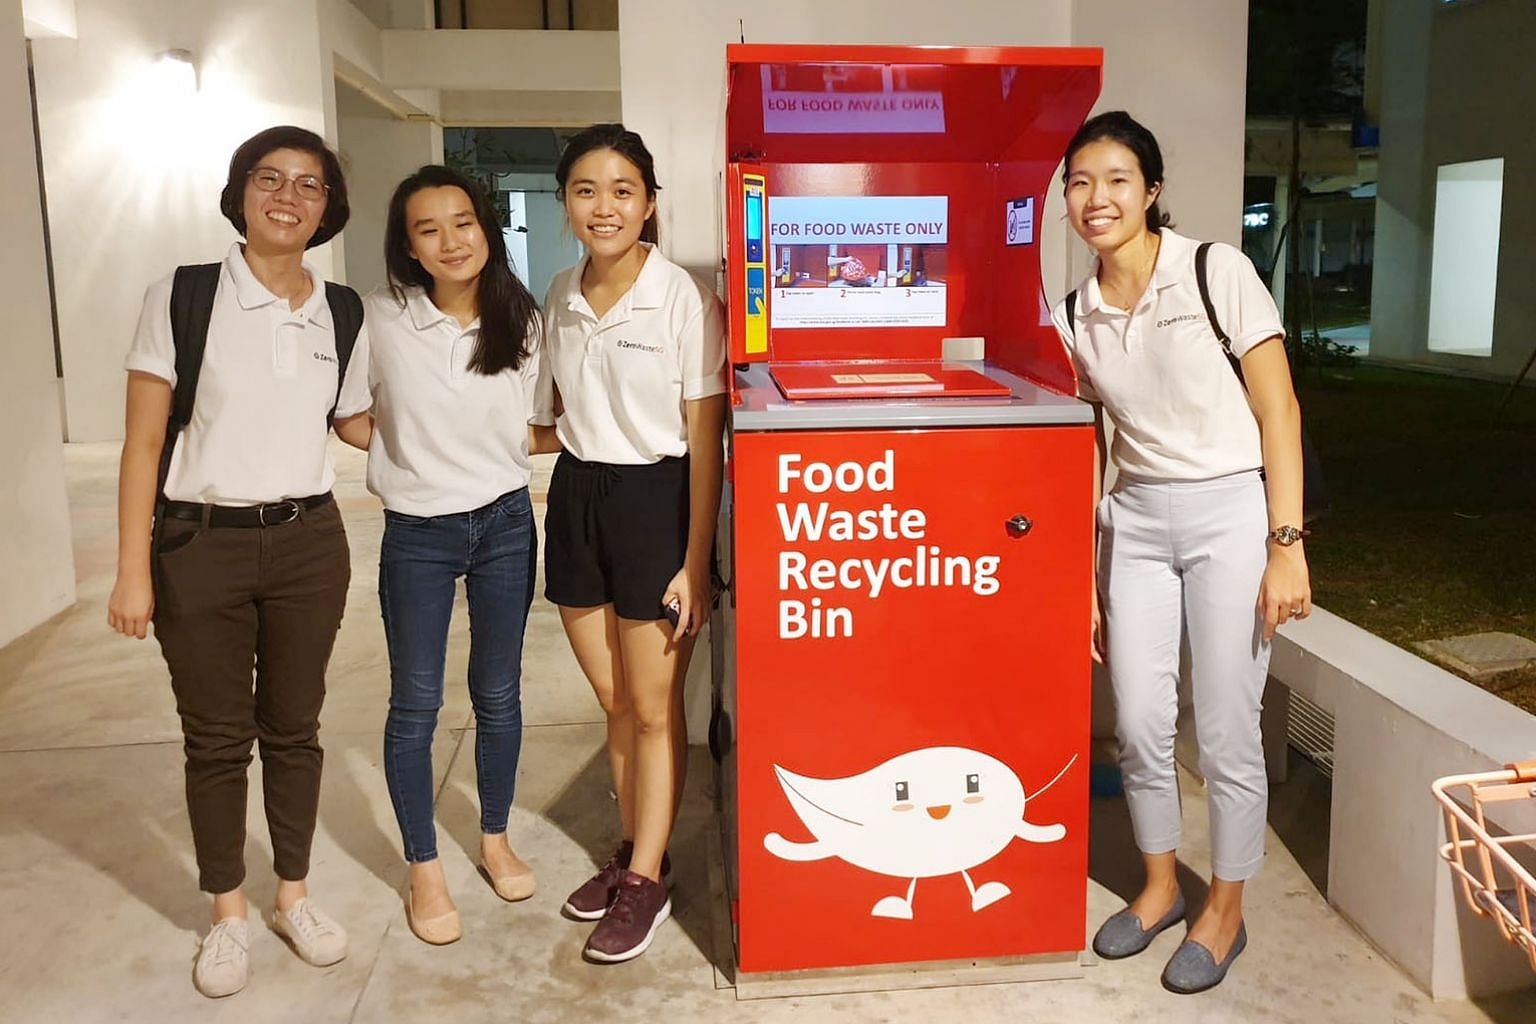 Ms Pek Hai Lin (far right) with staff from Zero Waste SG during an outreach effort earlier this year as part of a food-waste recycling pilot at Tampines Greenlace estate. She received the EcoFriend Award yesterday from Minister for the Environment an